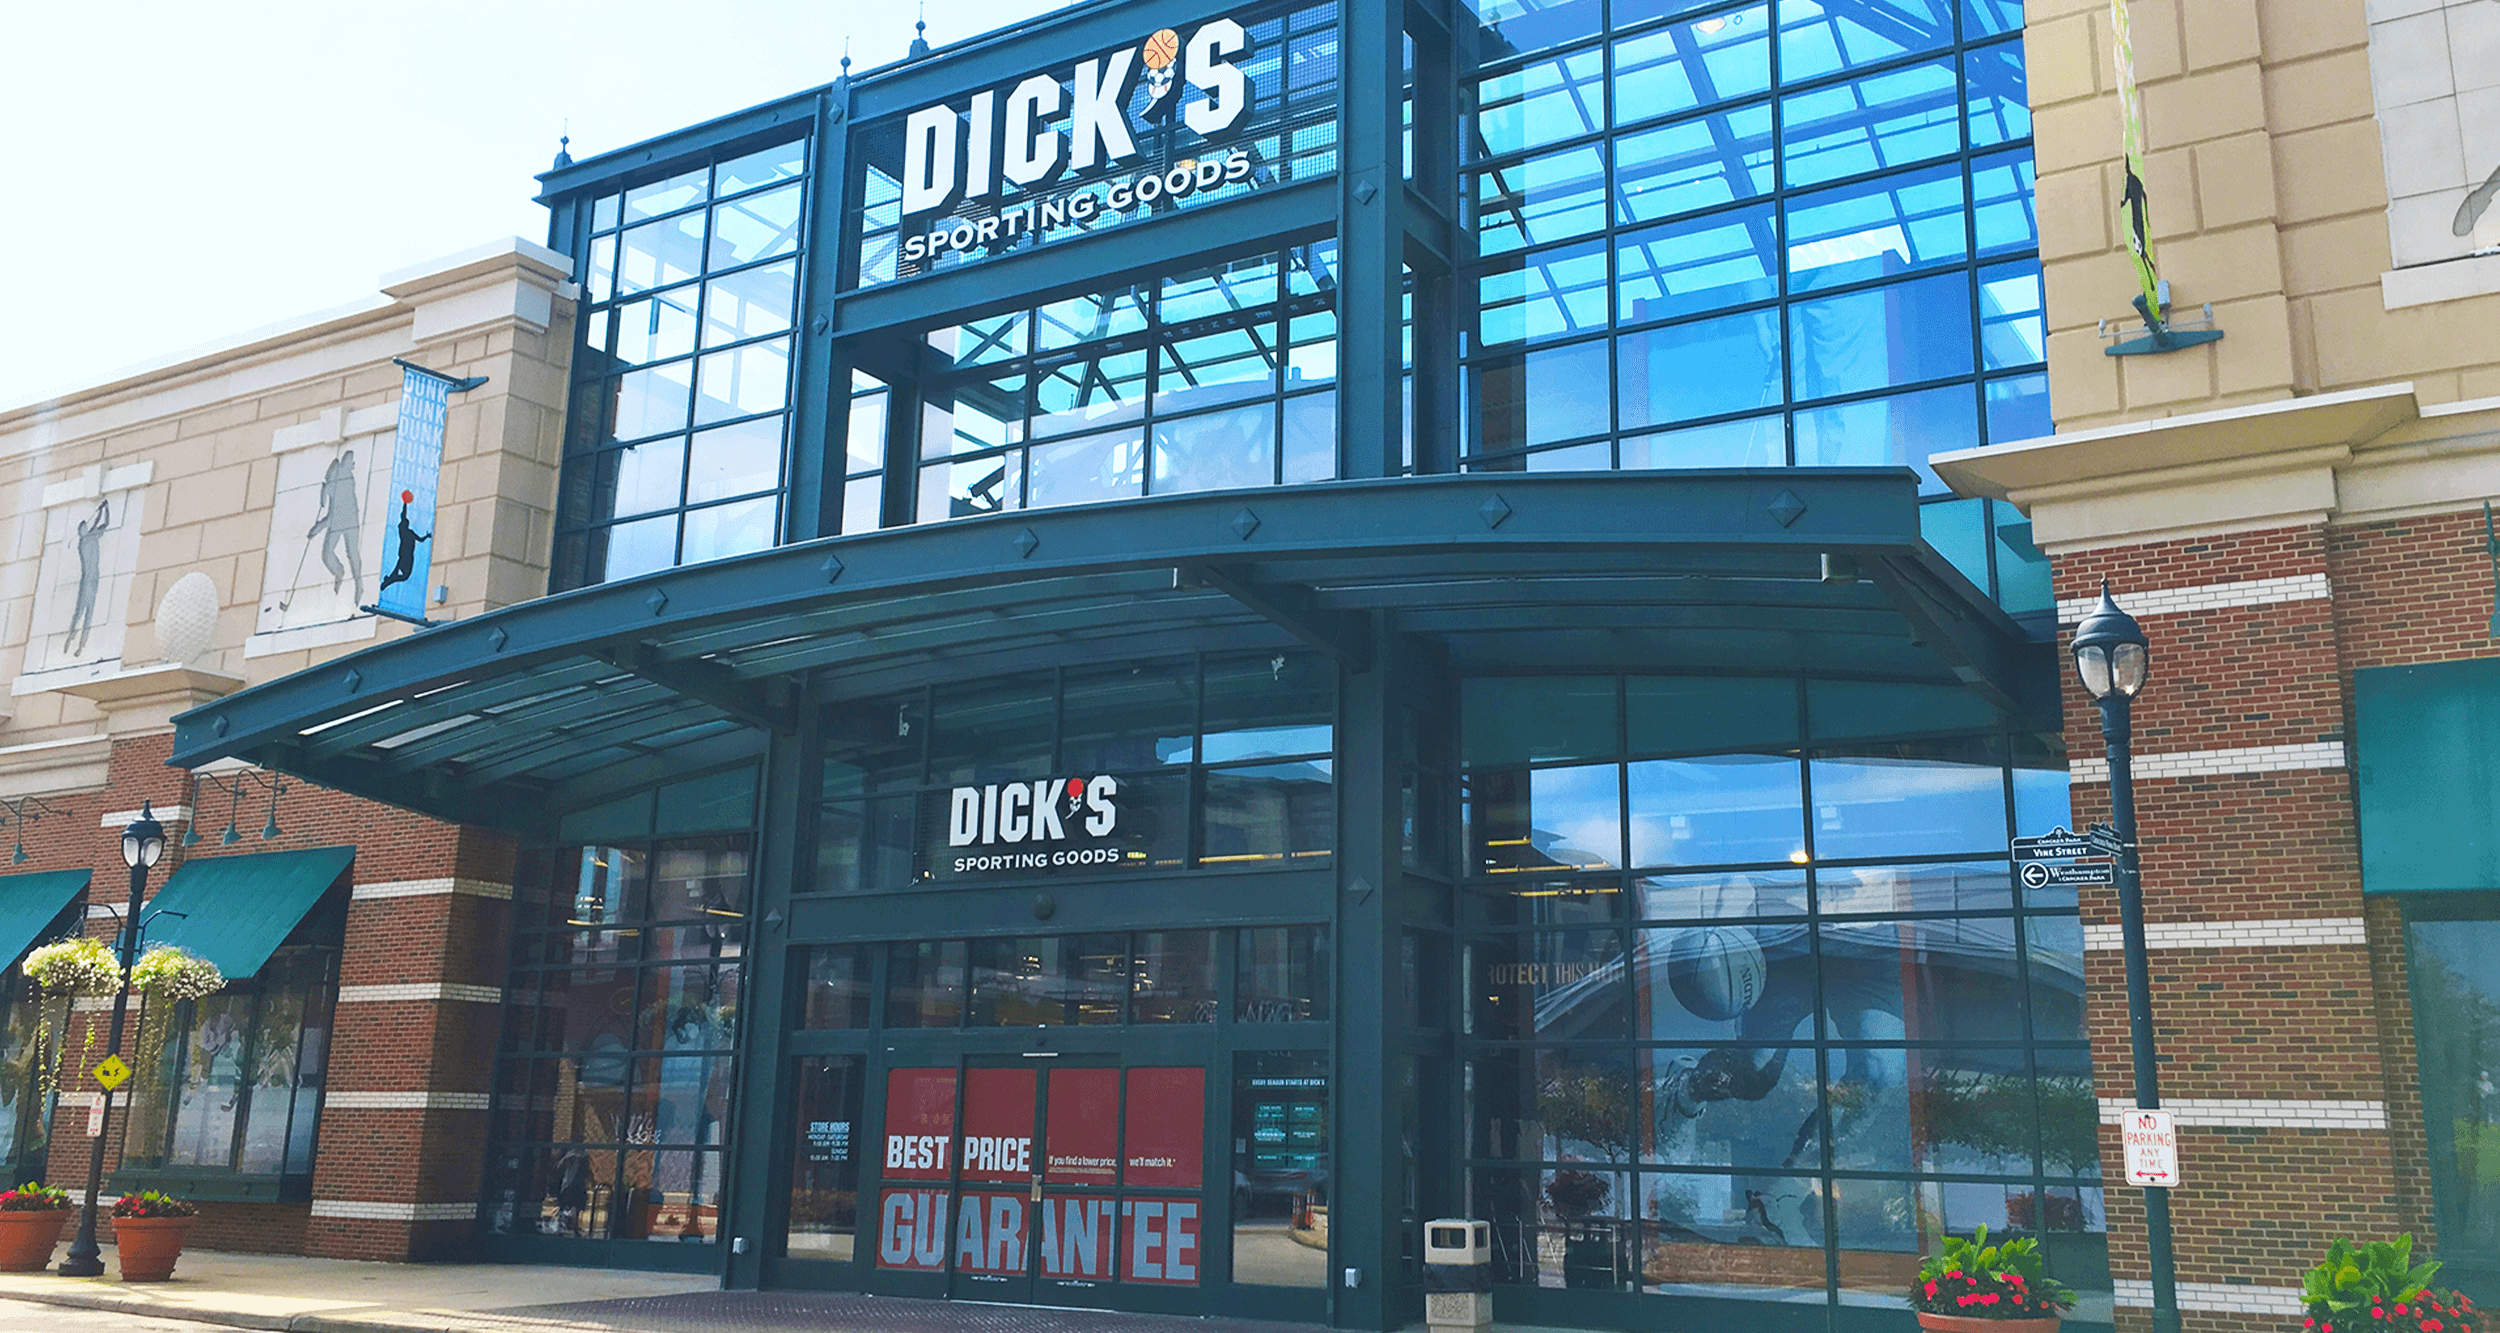 Dick's Sporting Goods Run Your Run myK